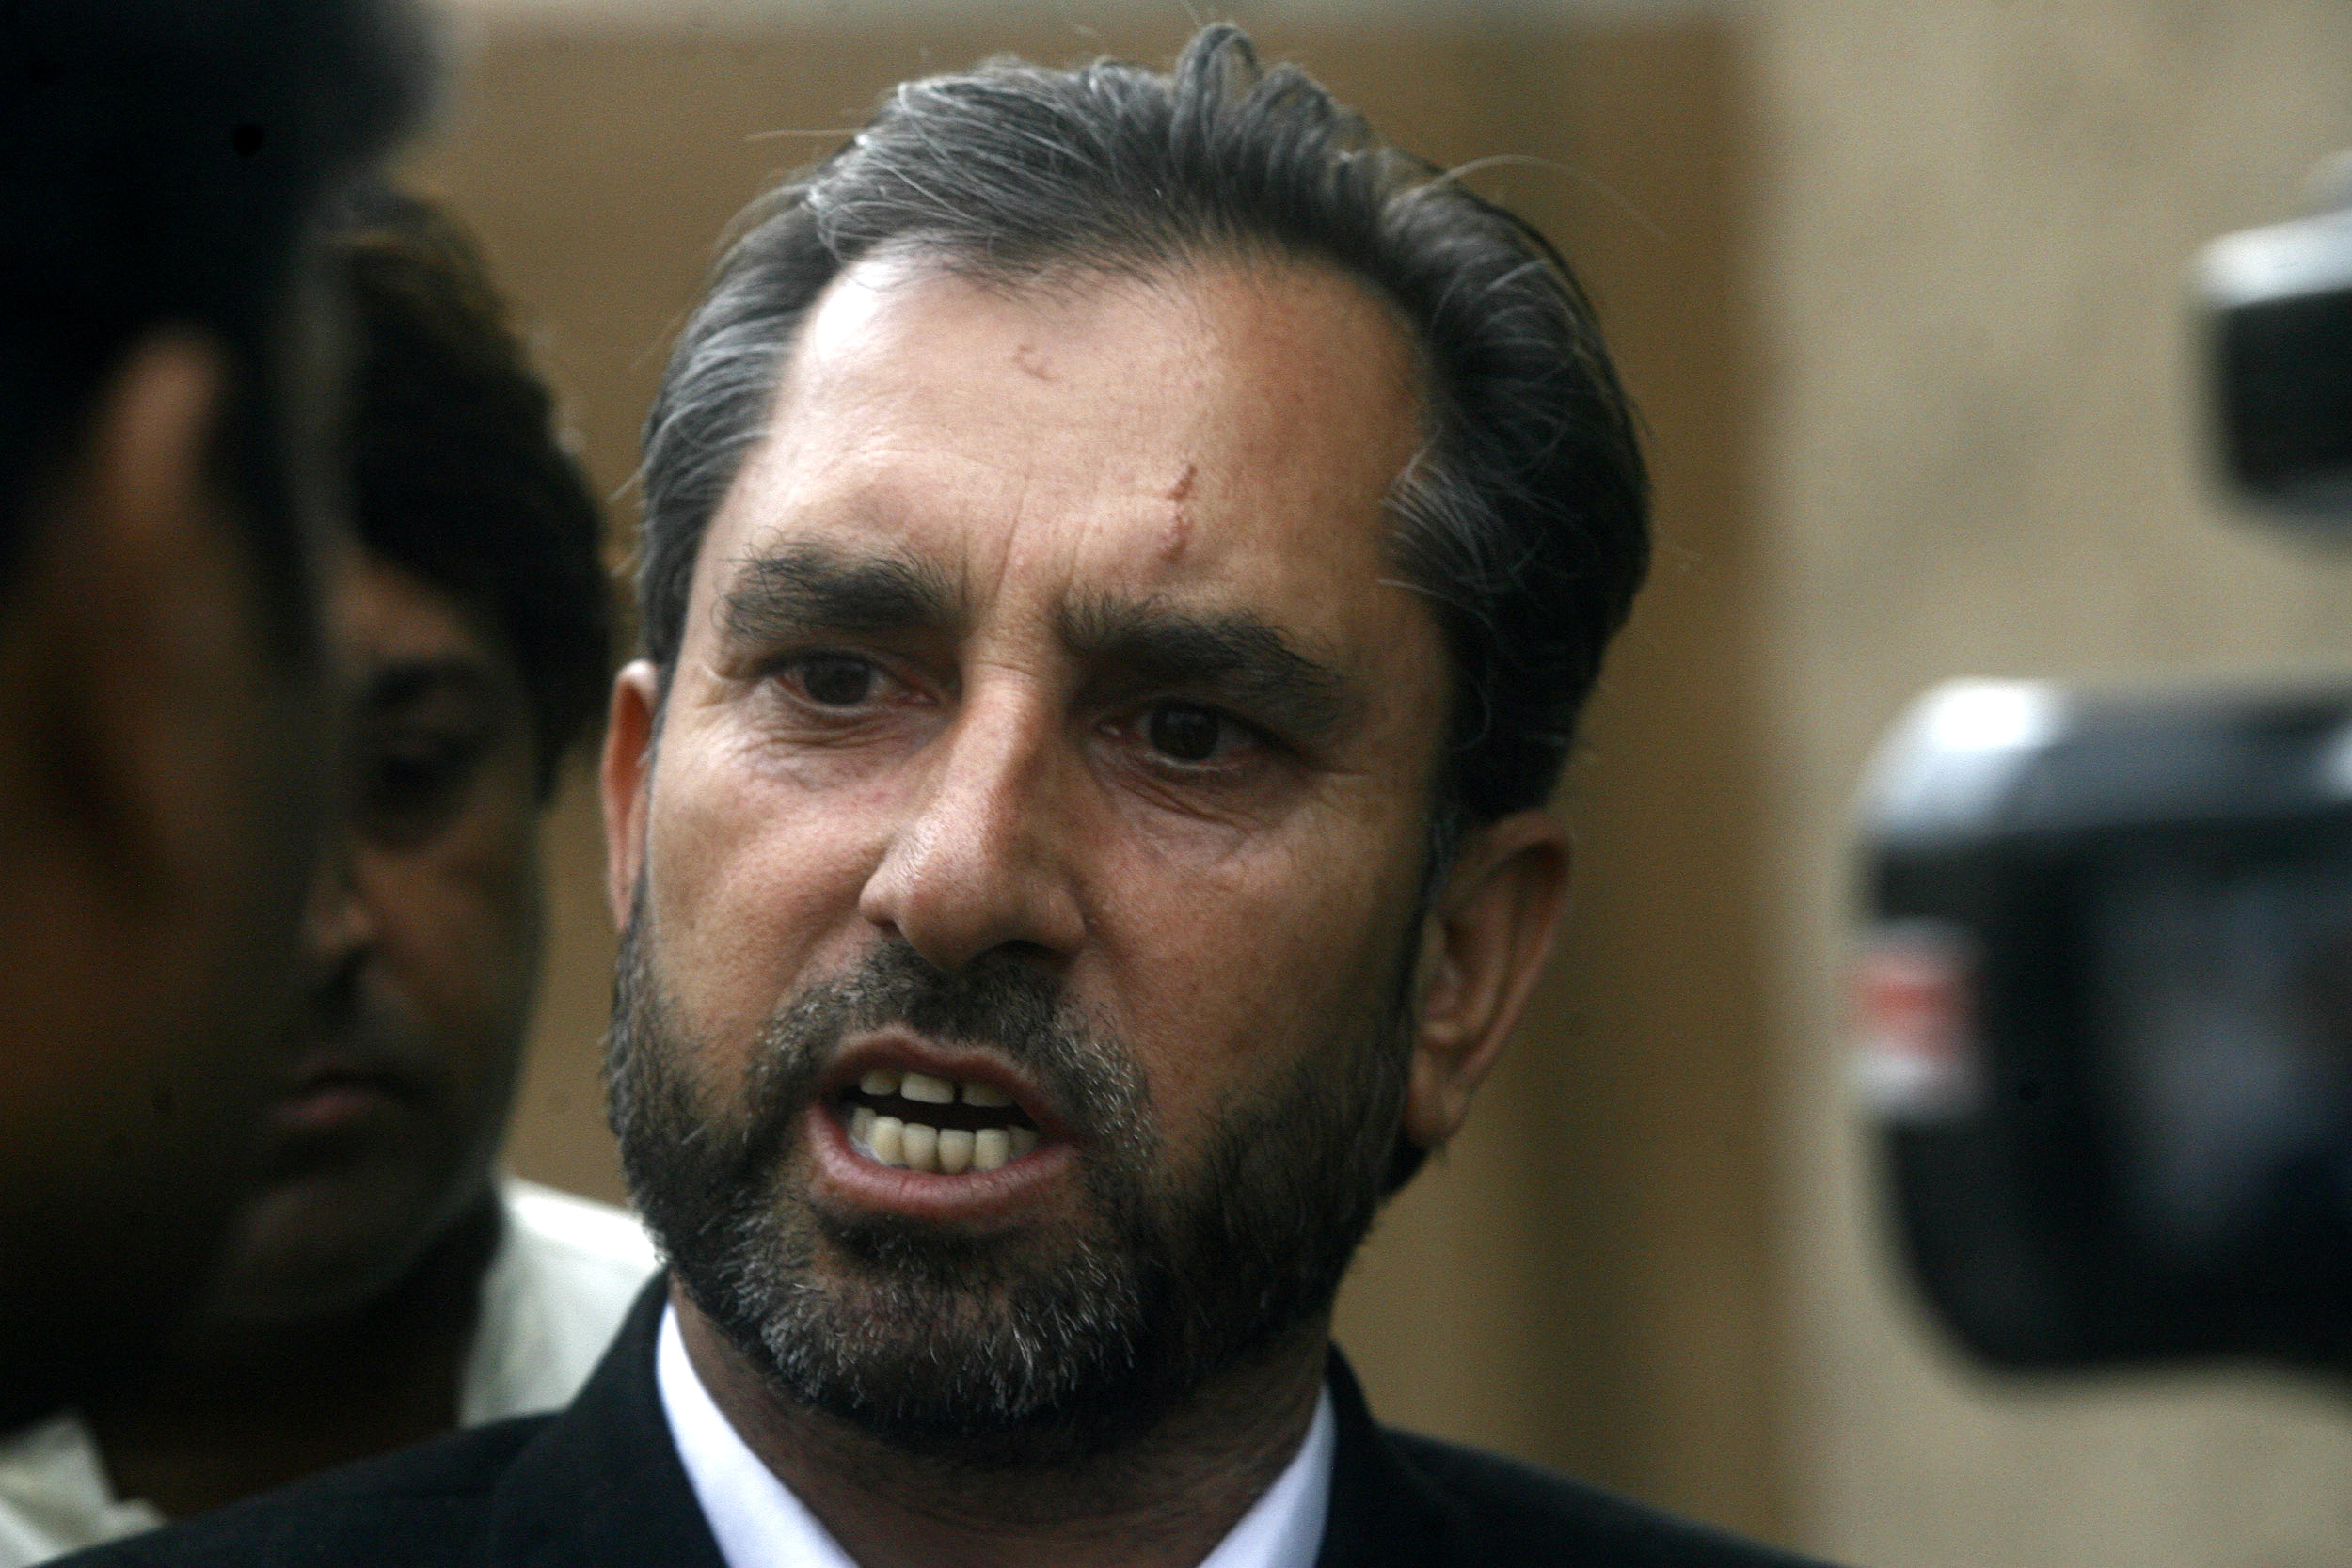 Samiullah Afridi, lawyer for Dr. Shakil Afridi who ran a fake vaccination campaign to help U.S. officials find al-Qaeda leader Osama bin laden, speaks to the media after appearing before the court in Peshawar, Pakistan, on Oct. 30, 2013